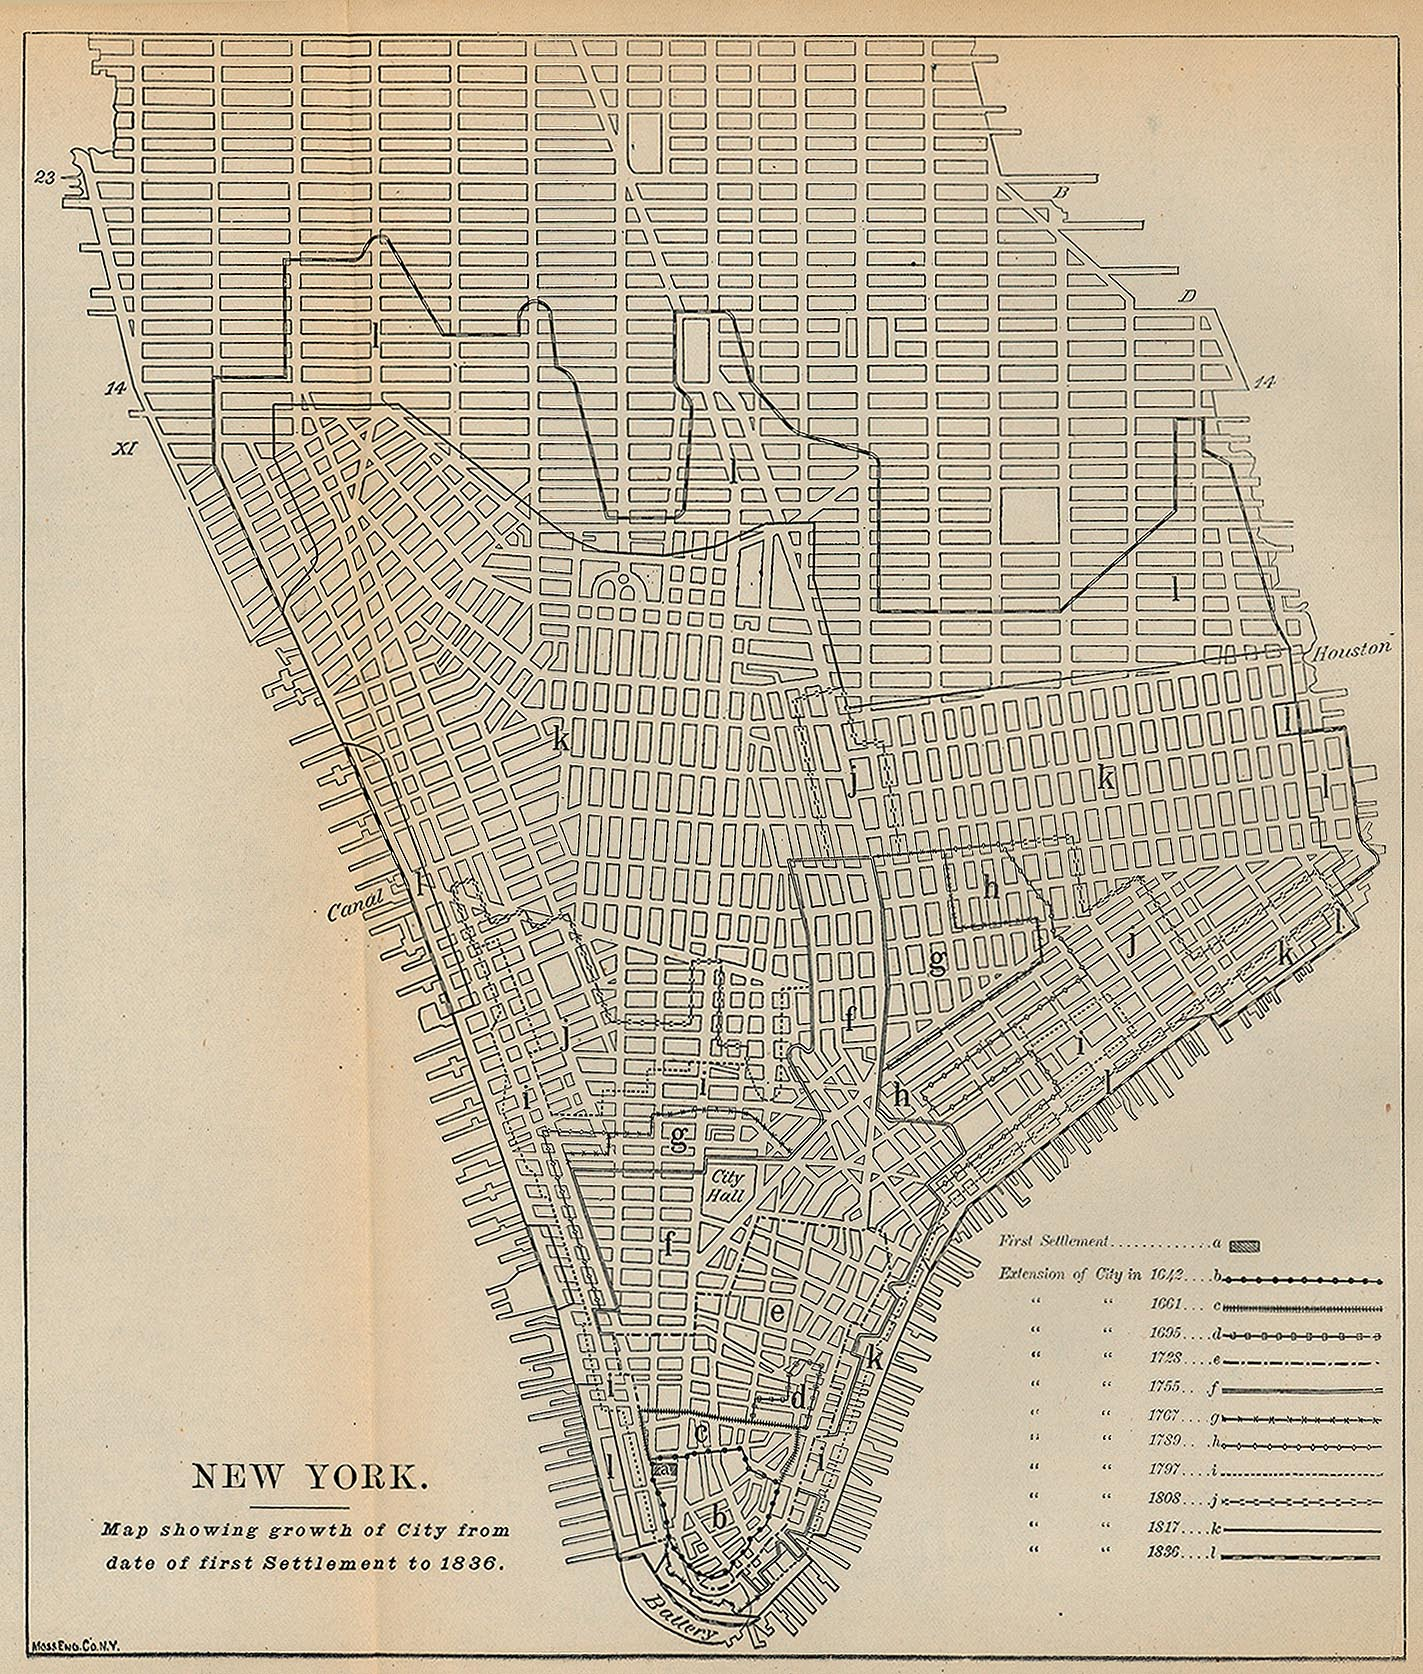 New York Maps - Perry-Castañeda Map Collection - UT Library ...